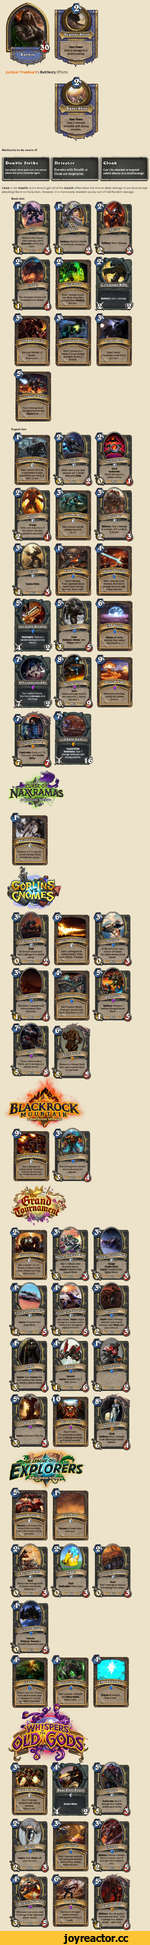 Justicar Trueheart's Battlecry Effects: Mechanics to be aware of: Cloak is like Stealth, but it doesn't get rid of the Stealth effect when the minion deals damage of any kind (except attacking) like it normally does. However, it is more easily revealed via any sort of AoE/Random damage. Basic Se